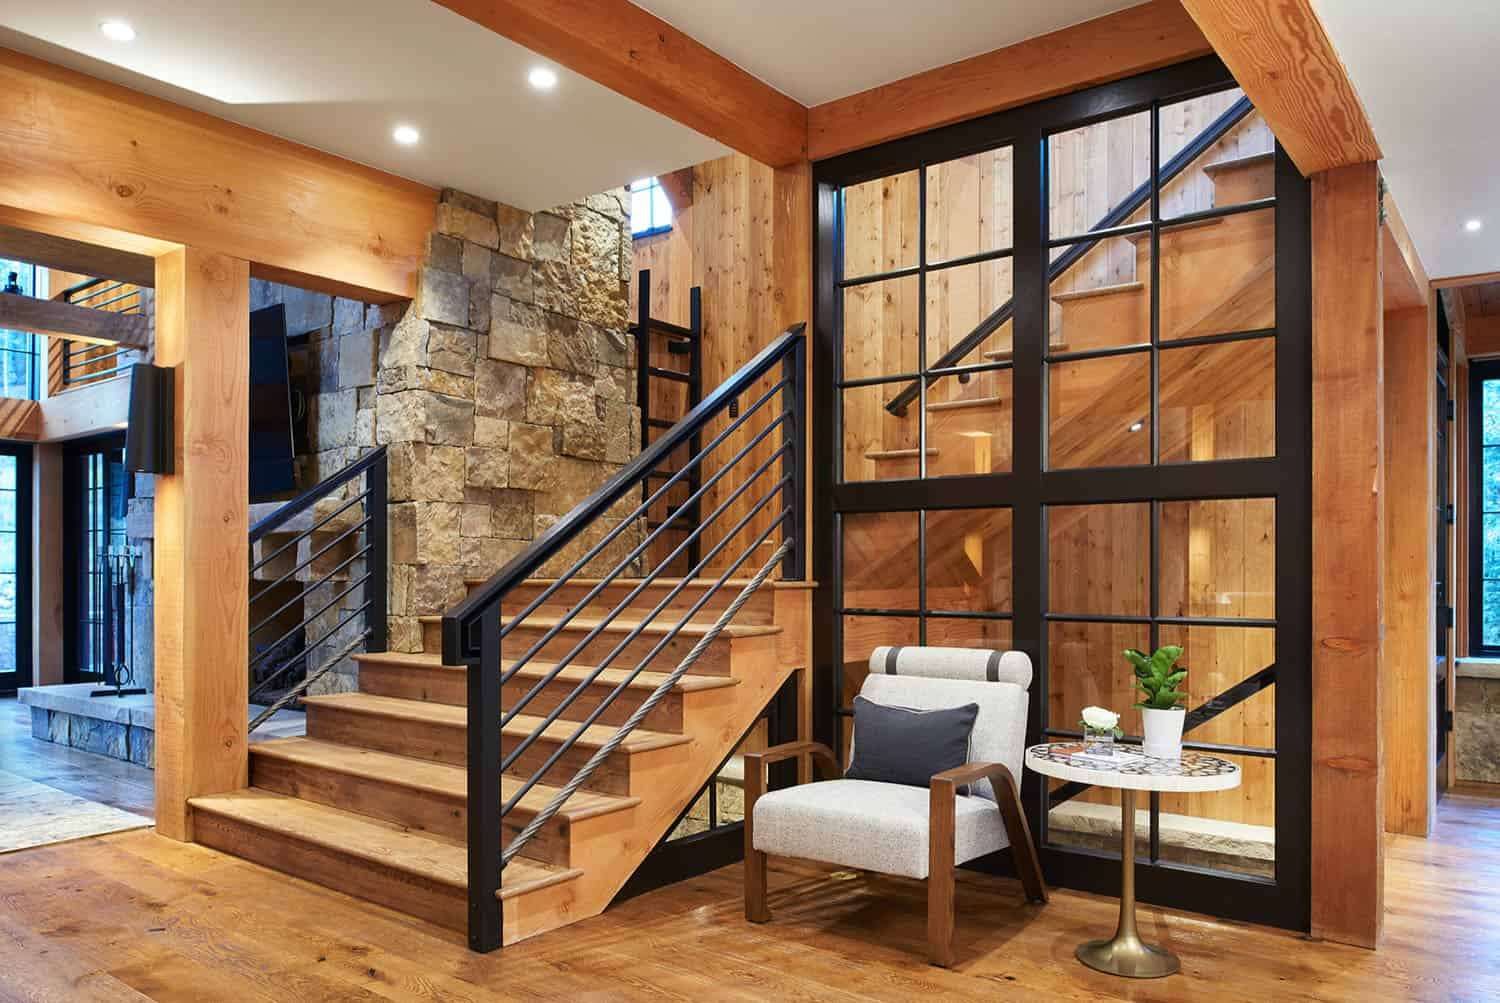 rustic-barn-inspired-home-staircase